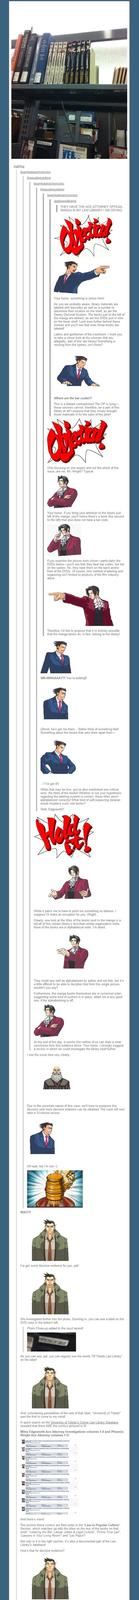 The Single greatest Tumblr thread of all time.